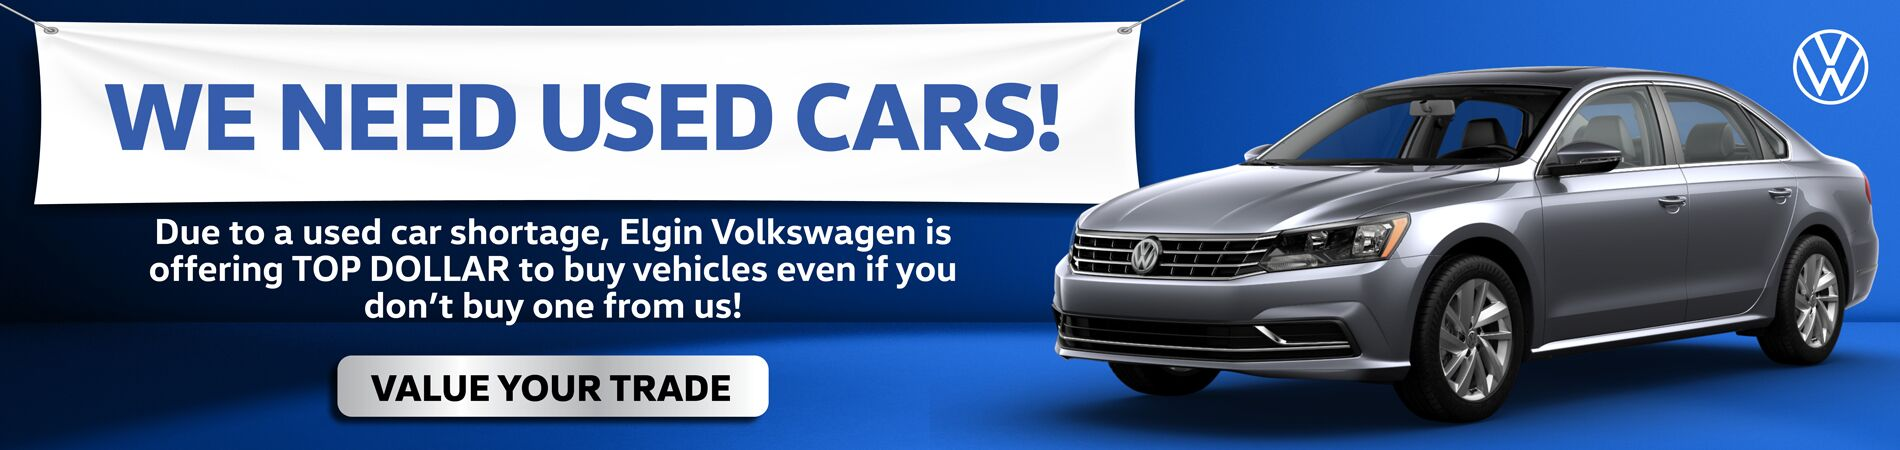 We Need Used Cars - Value Your Trade